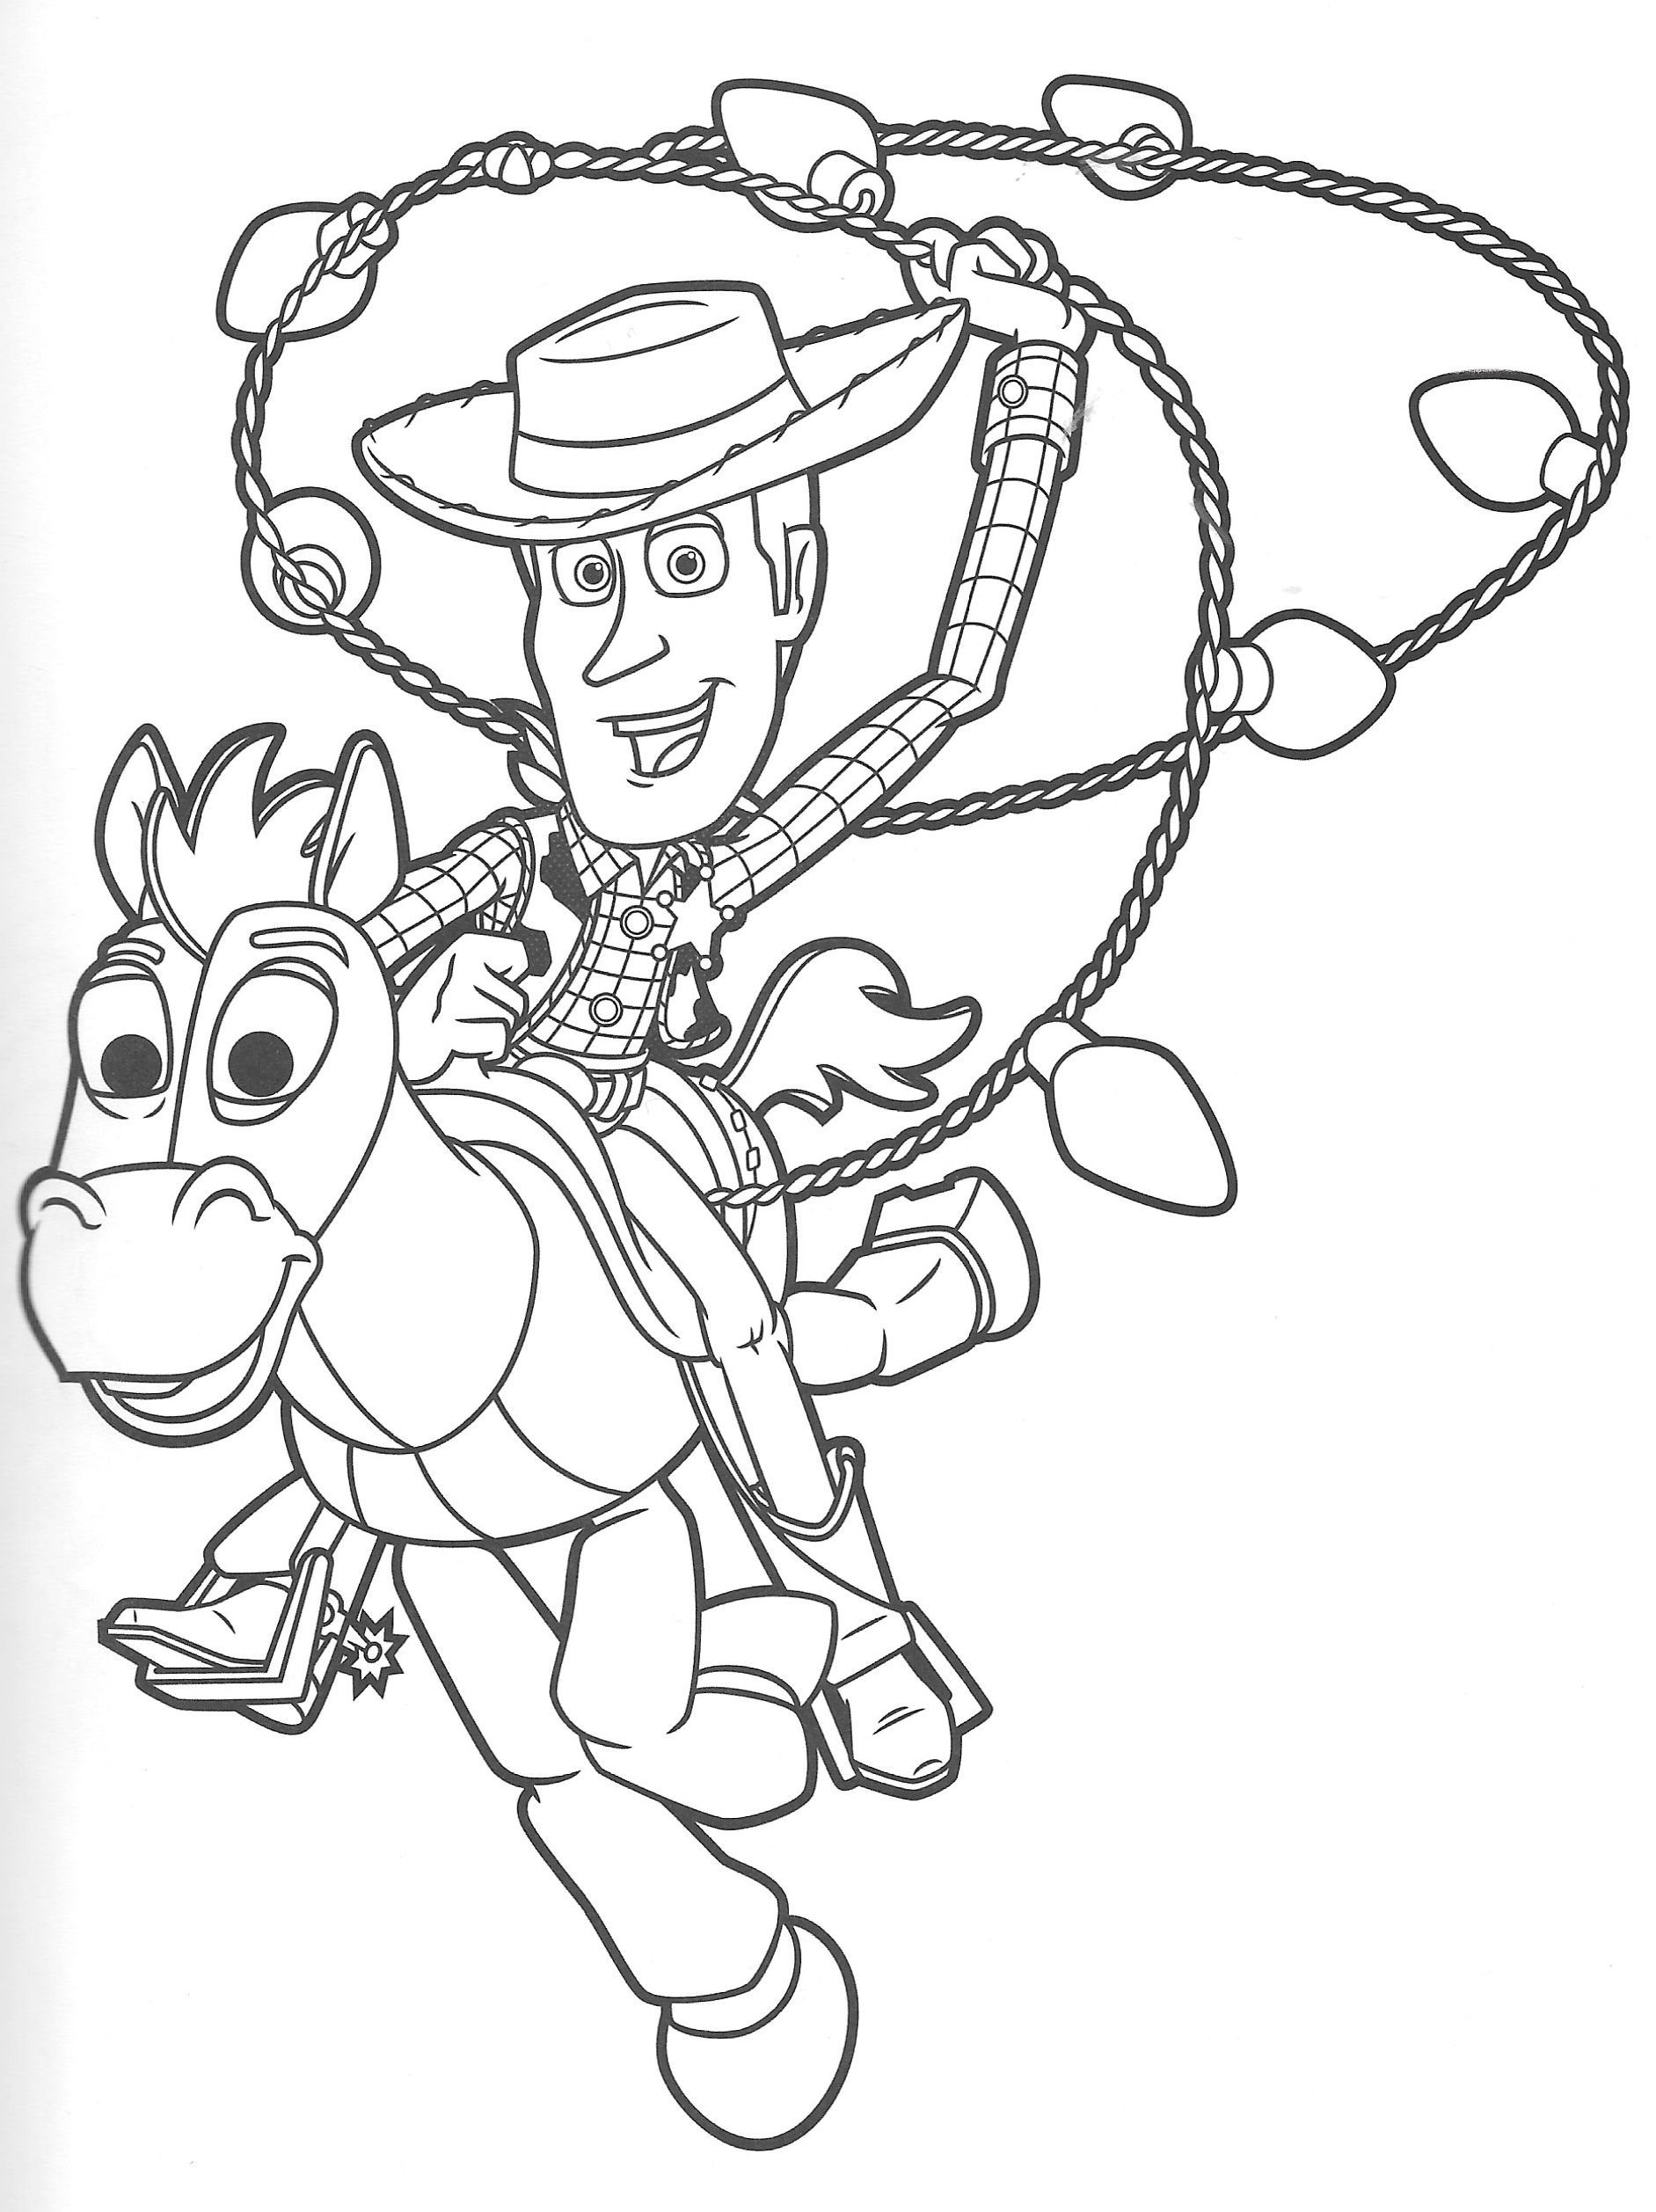 Pin By Emil On Disney Toy Story Coloring Pages Disney Coloring Pages Christmas Coloring Pages